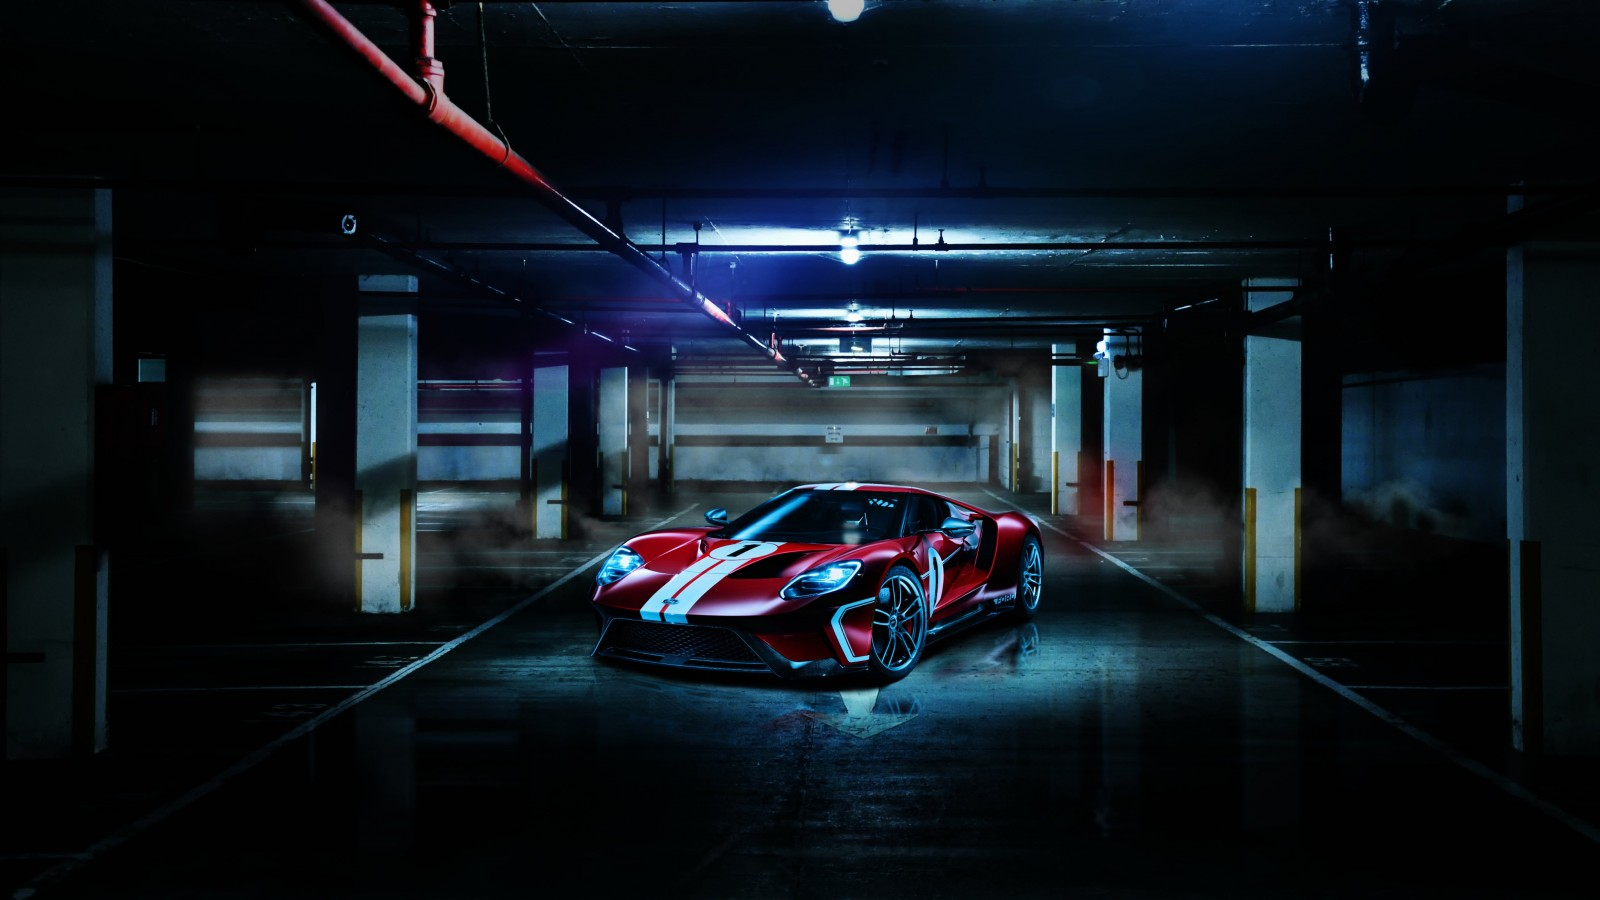 Hd Wallpapers 1600x900 Cars Ford Gt 4k Wallpapers Hd Wallpapers Id 27018